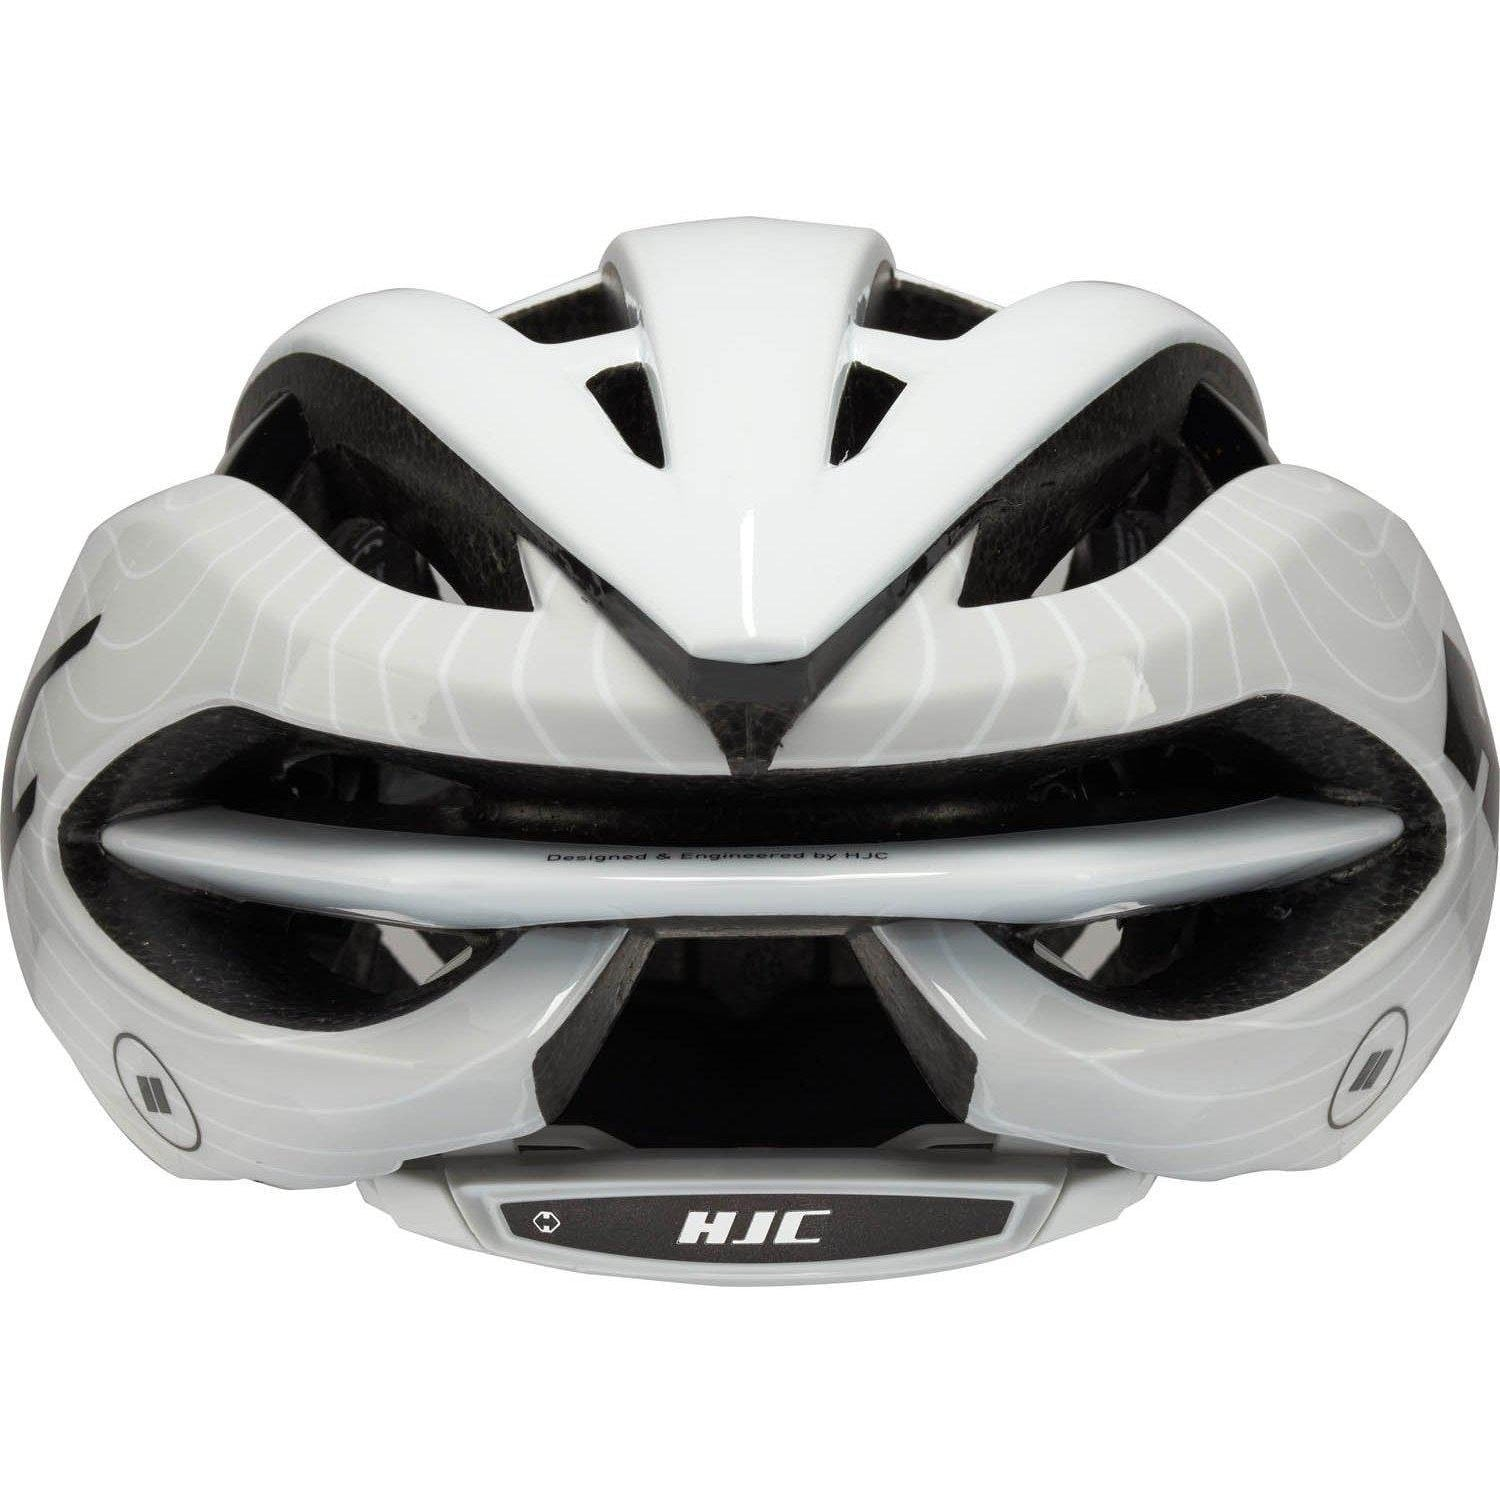 HJC-HJC Ibex 2.0 Road Cycling Helmet--saddleback-elite-performance-cycling